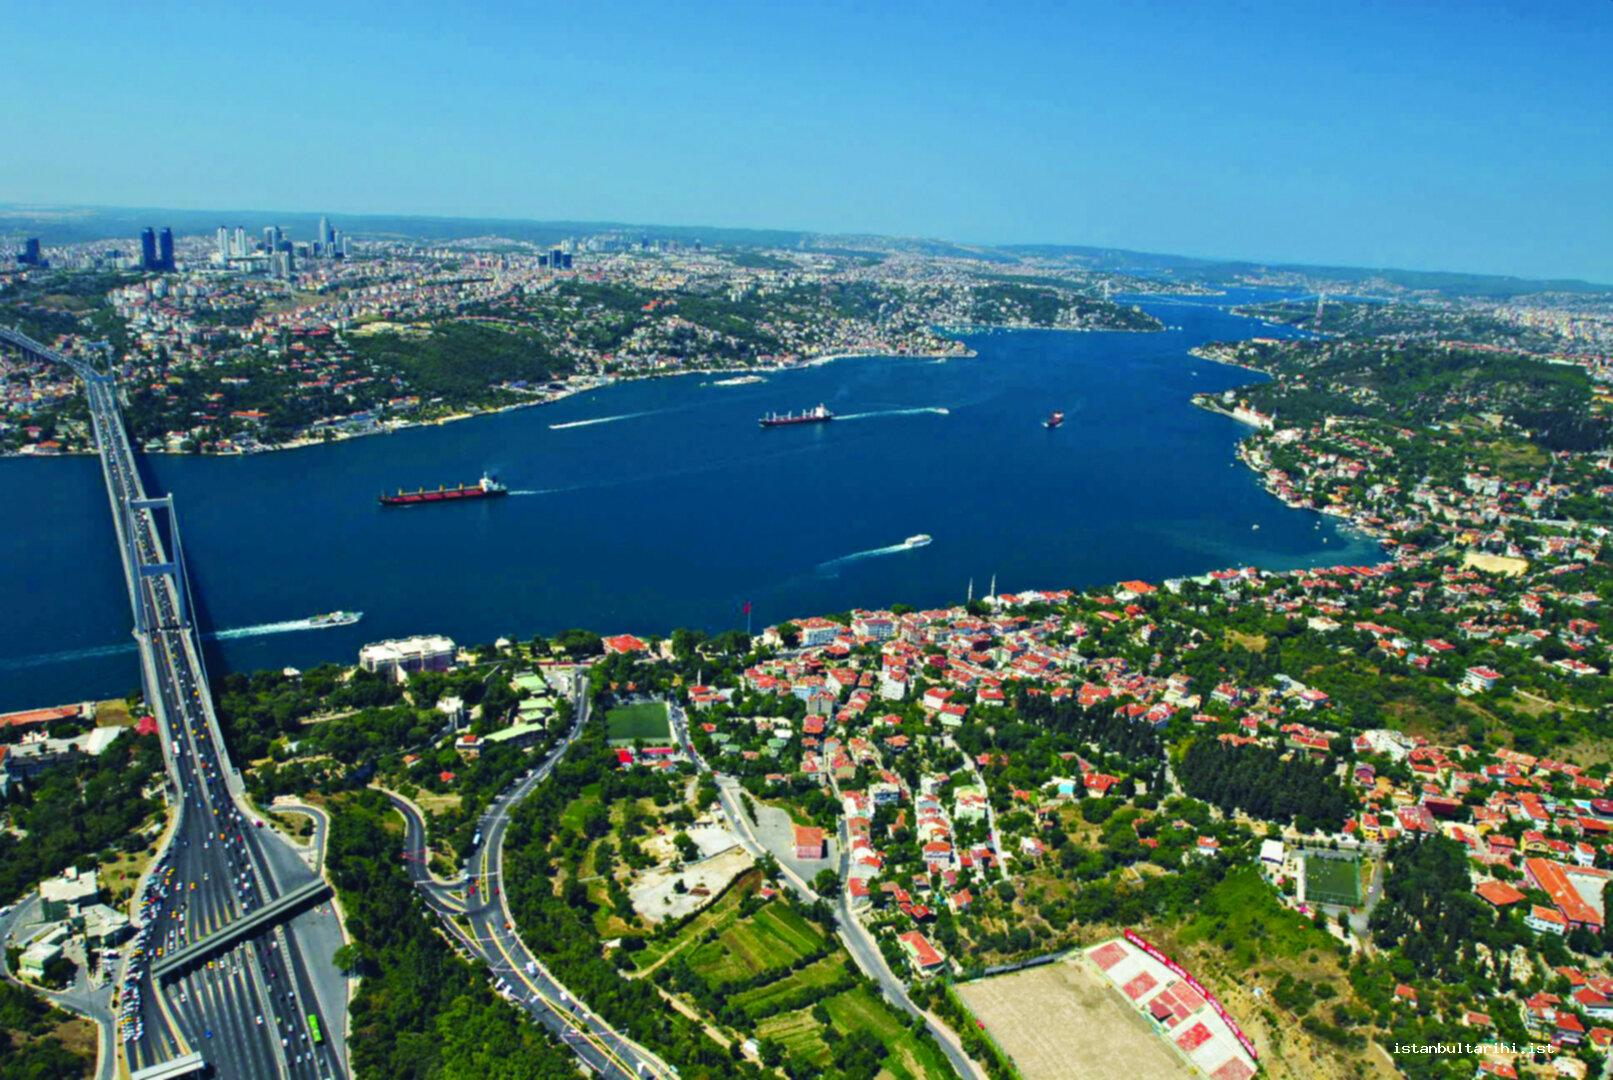 29- From the Bridge of 15 July Martyrs to Fatih Sultan Mehmet Bridge: Two sides of Bosporus